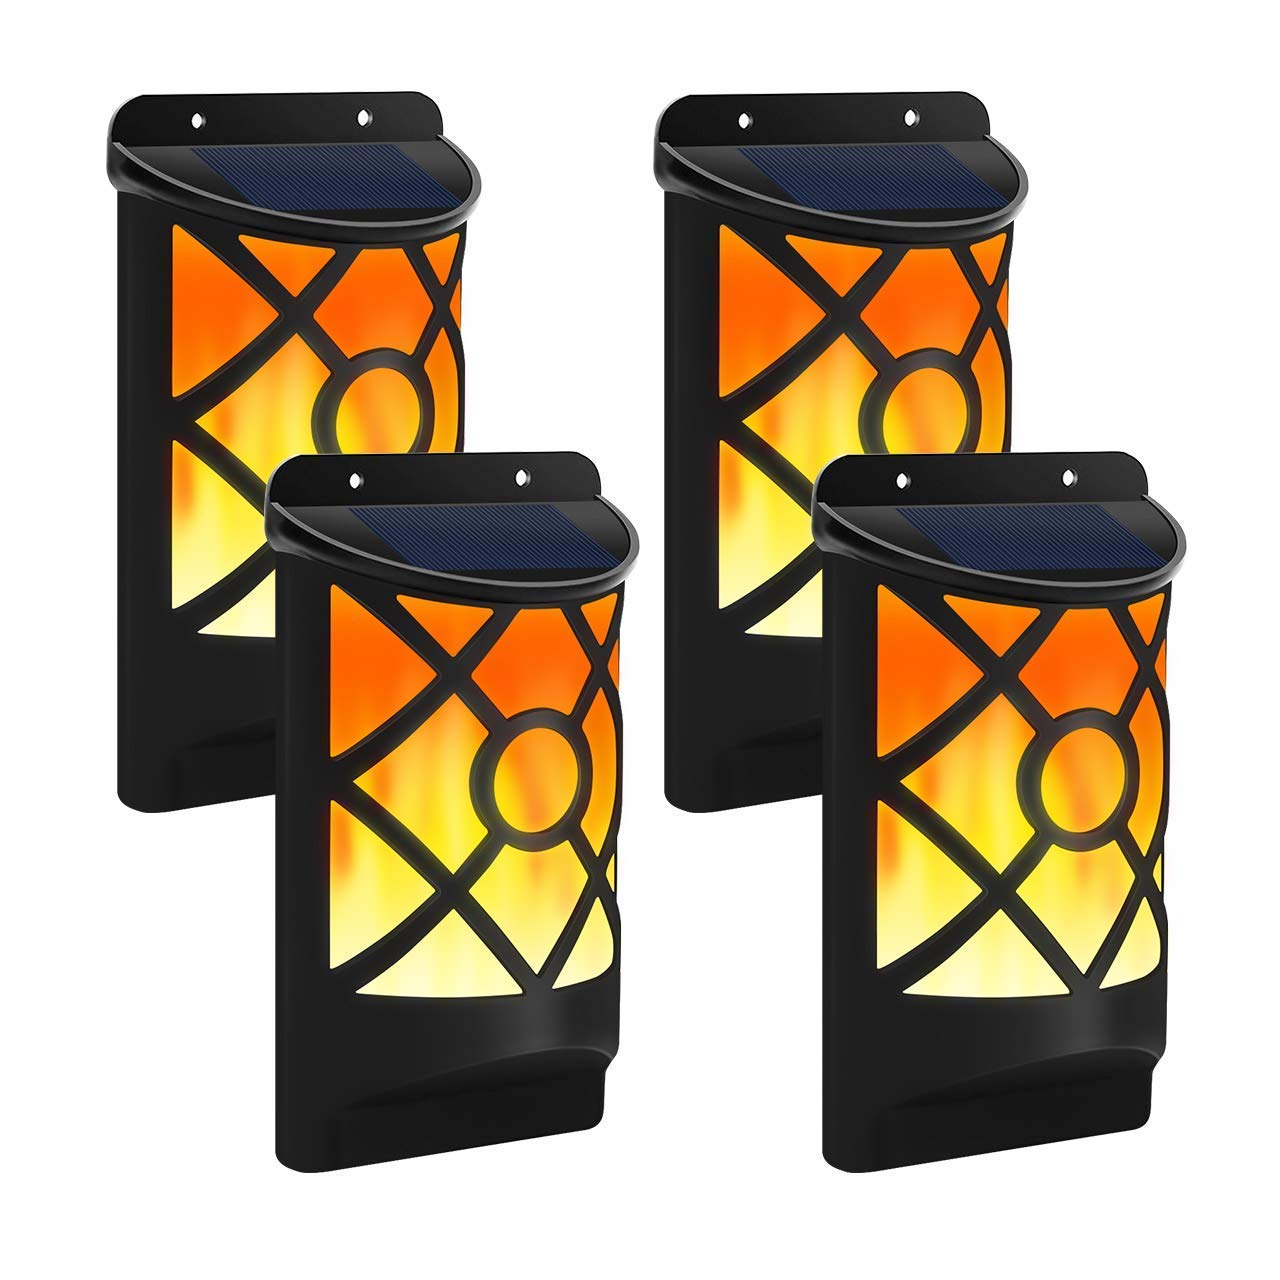 Otdair Solar Wall Lights,LED Night Lights Solar Deck Lights with Flickering Flame 66 LED Waterproof Outdoor Solar Lights for Garden Landscape Decoration Pathway Patio Fence Deck Yard 4 Pack